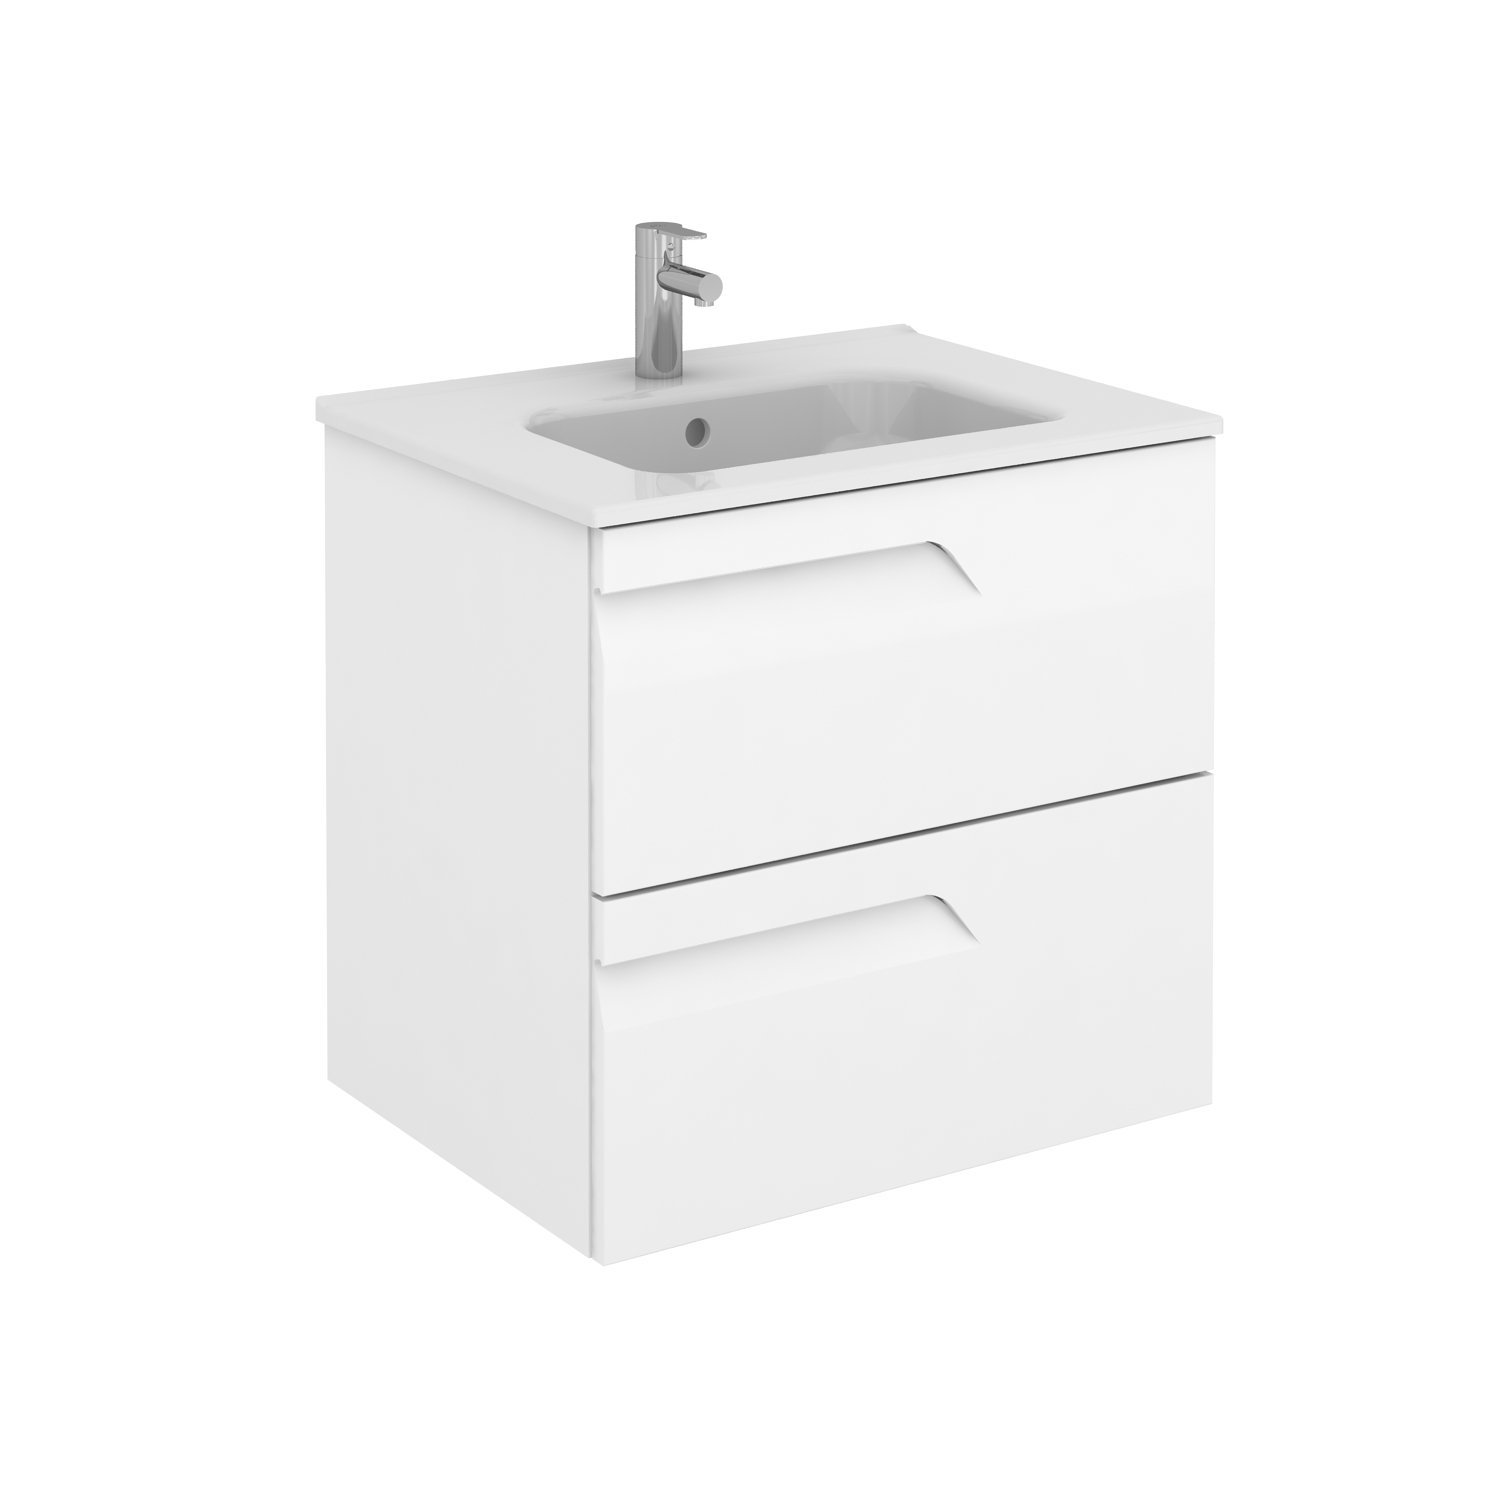 Sku 125719 123341 Item 125719 123341 Brand Royo Vitale 24 Inches Wall Mounted Modern Bathroom Vanity 2 Drawer White With Basin Bathroom Vanities And Sink Consoles Royo White 1100 00 1200 00 Wall Mounted Engineered Wood Ceramic 20 To 24